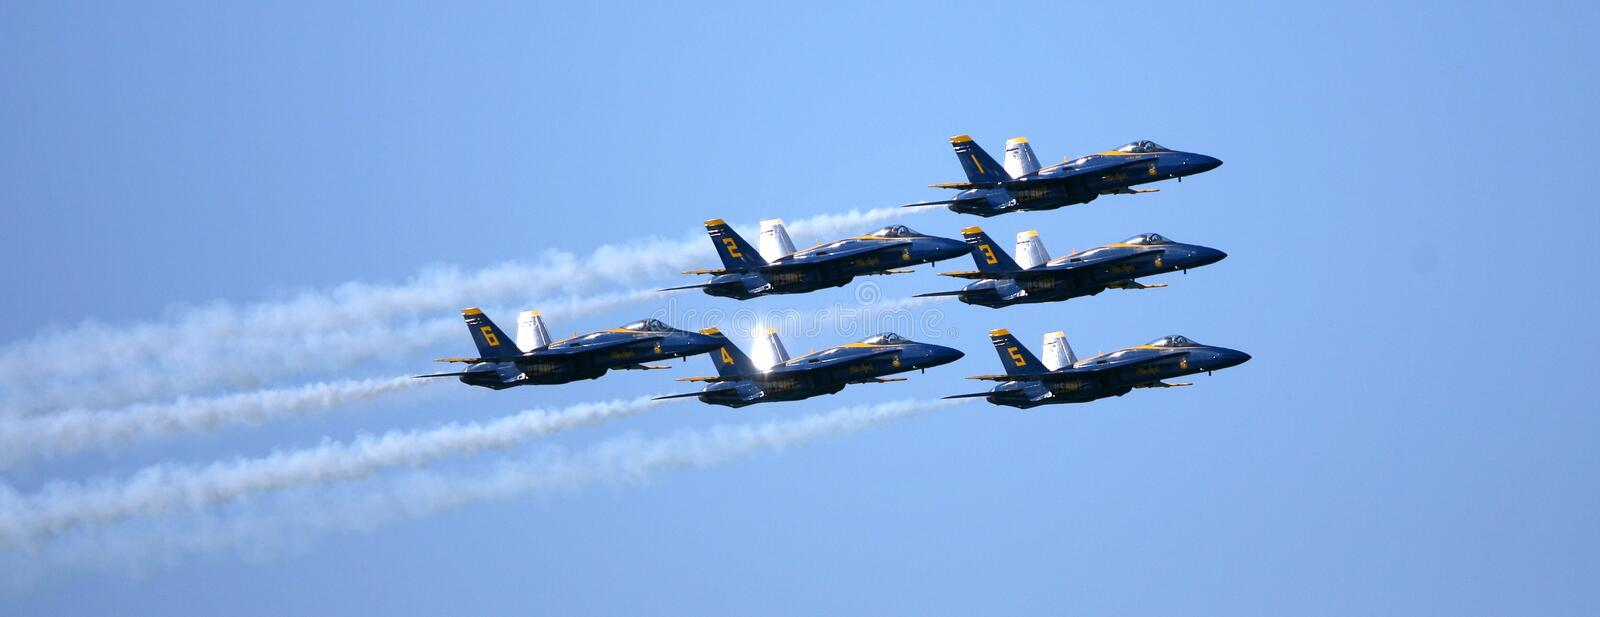 Blue Angels Air Show royalty free stock photography